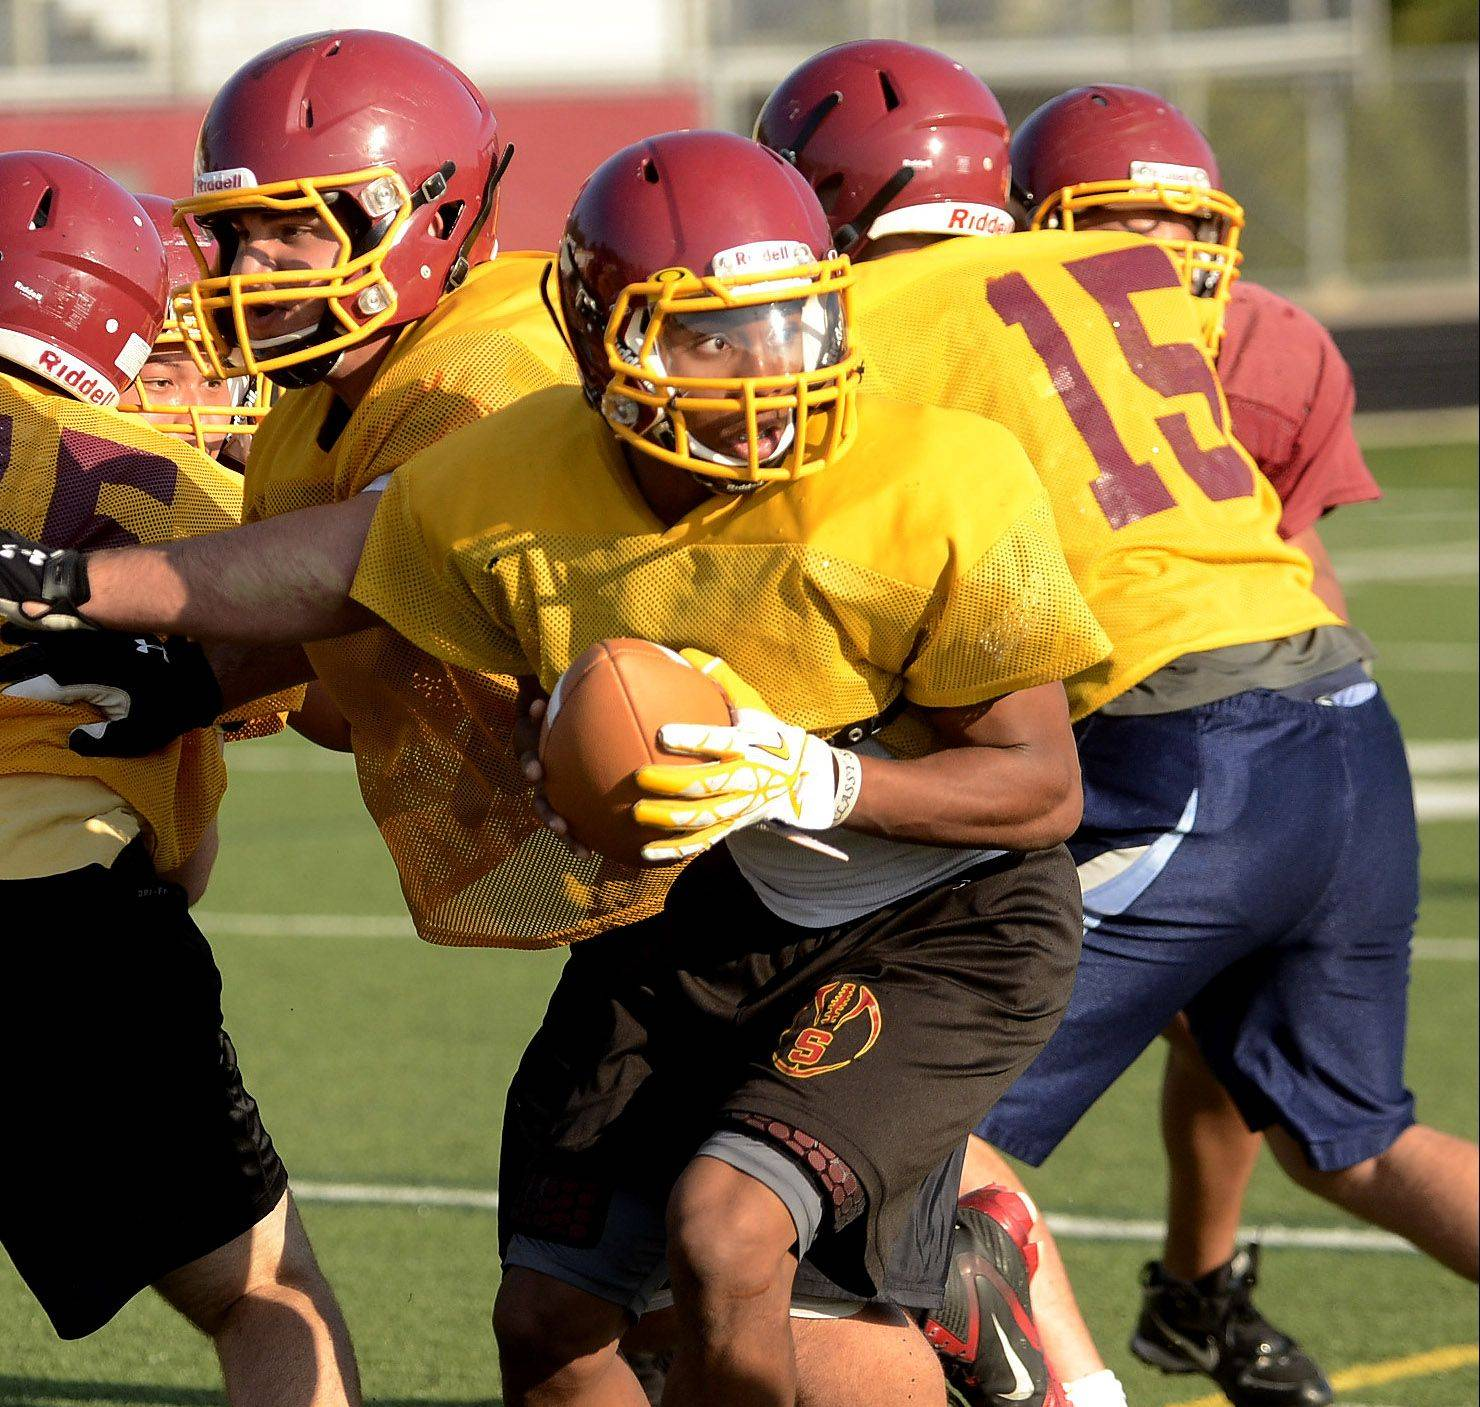 Schaumburg's Smith stands tall in senior season